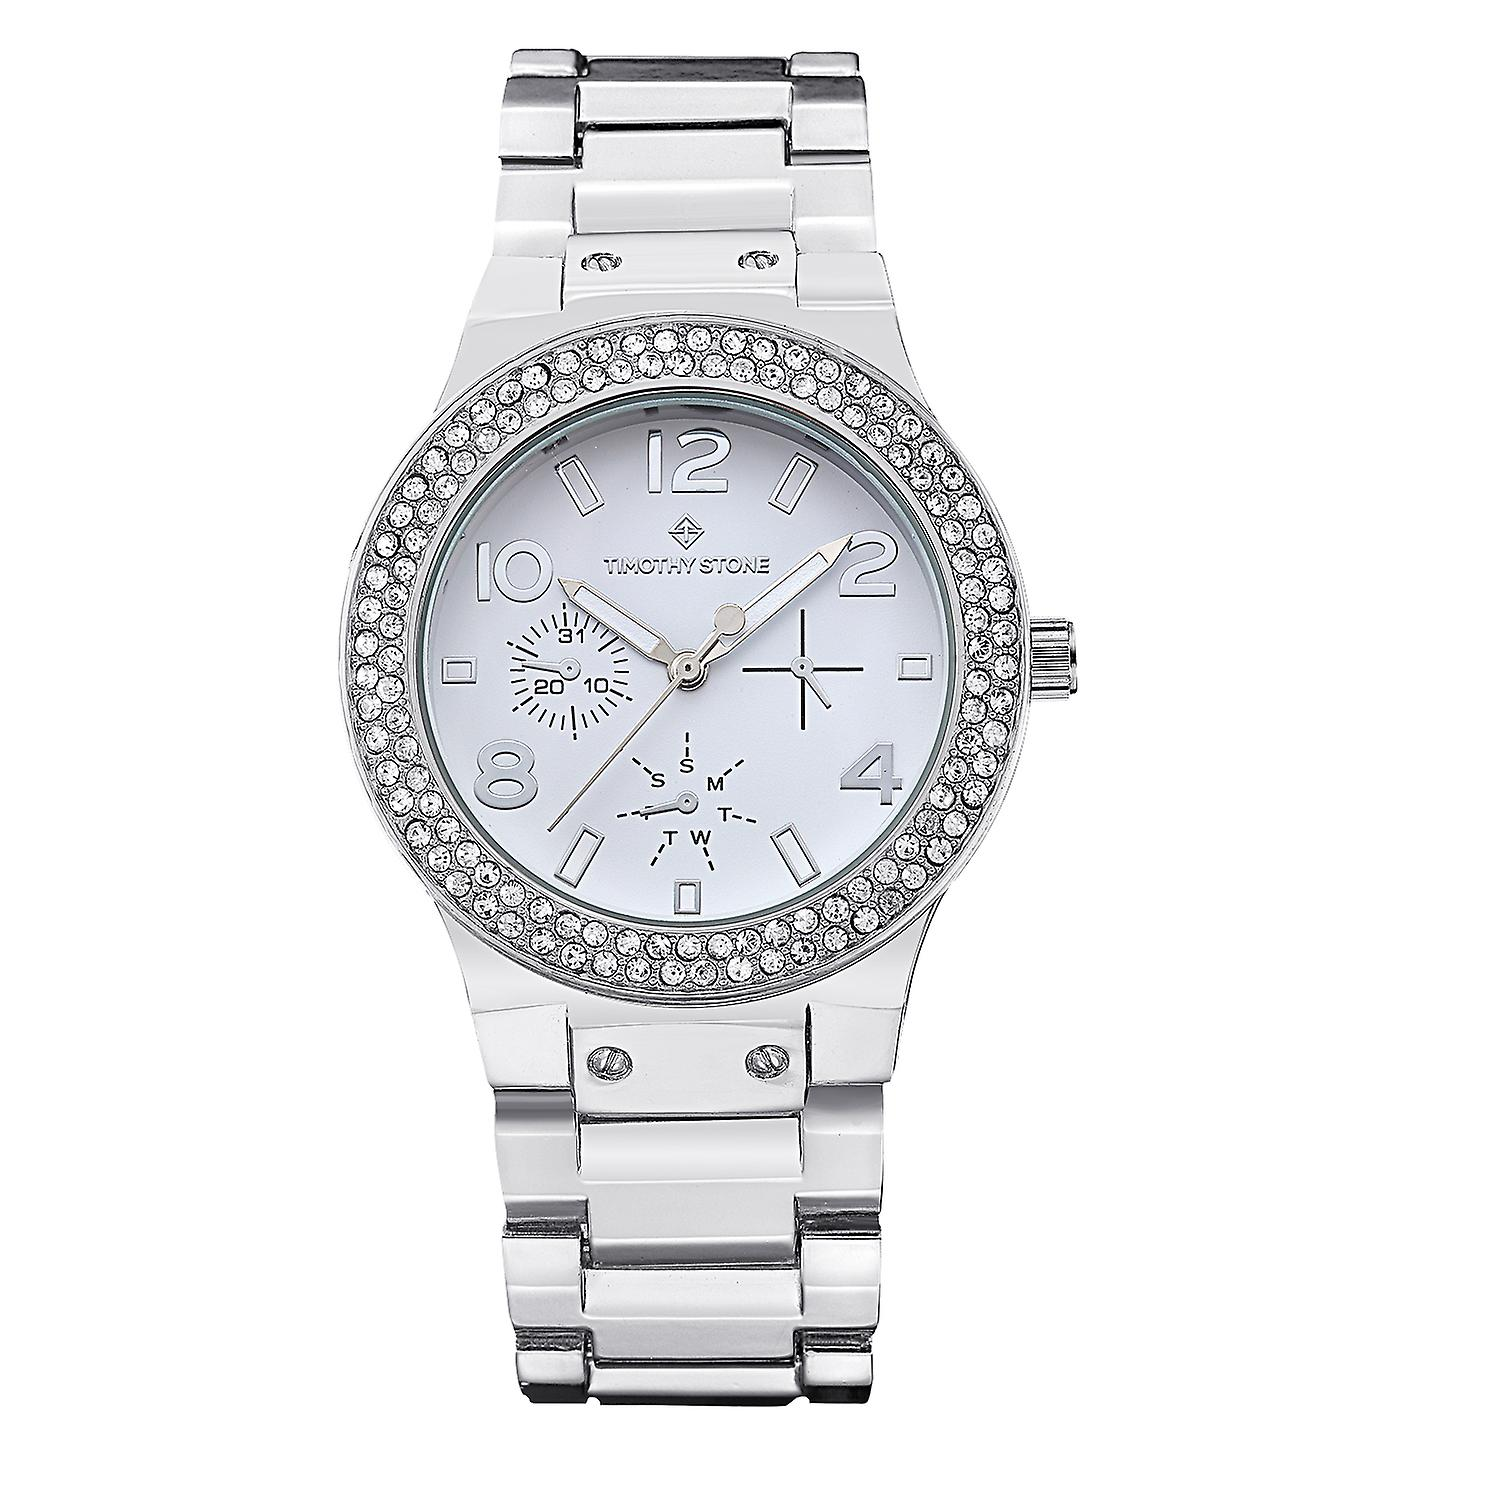 Timothy Stone Women's FA�ON-STAINLESS Silver-Tone Watch